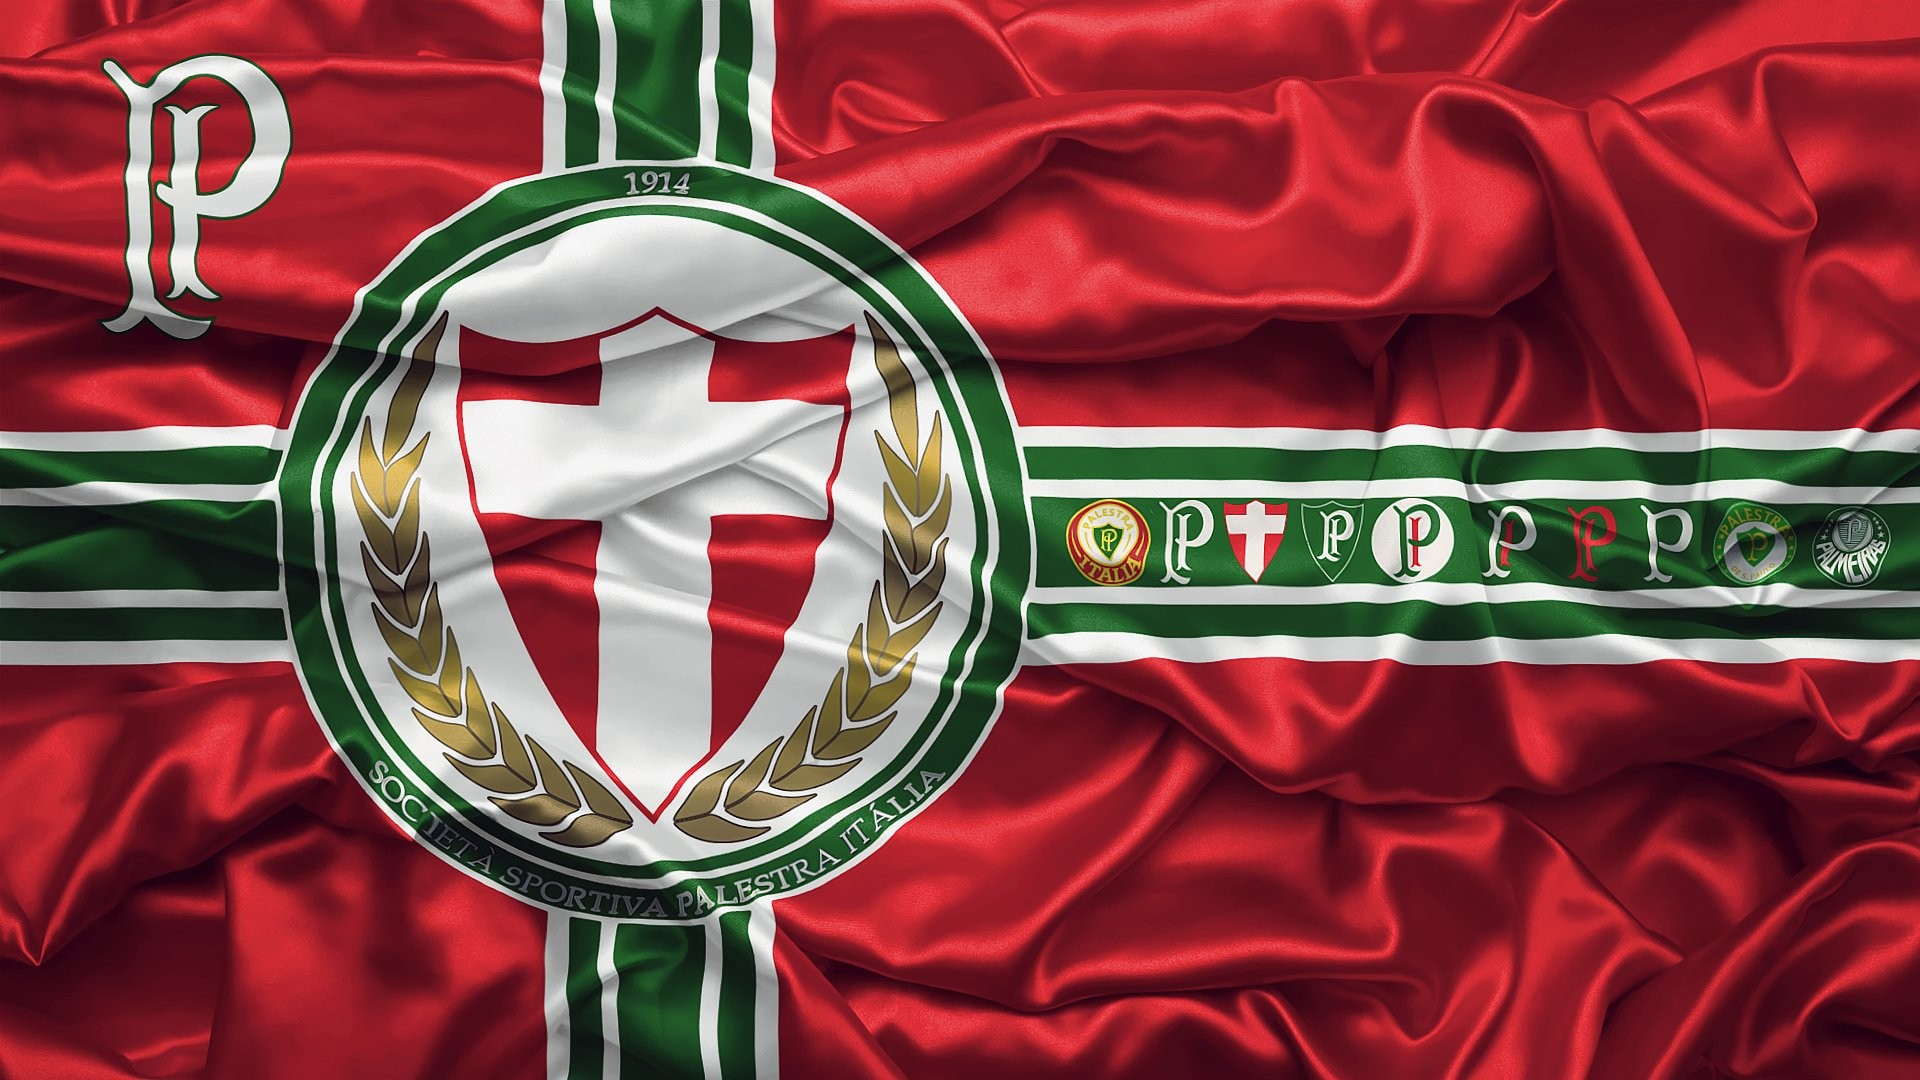 1920x1080 Palestra Itália, Palmeiras Wallpapers HD / Desktop and Mobile Backgrounds